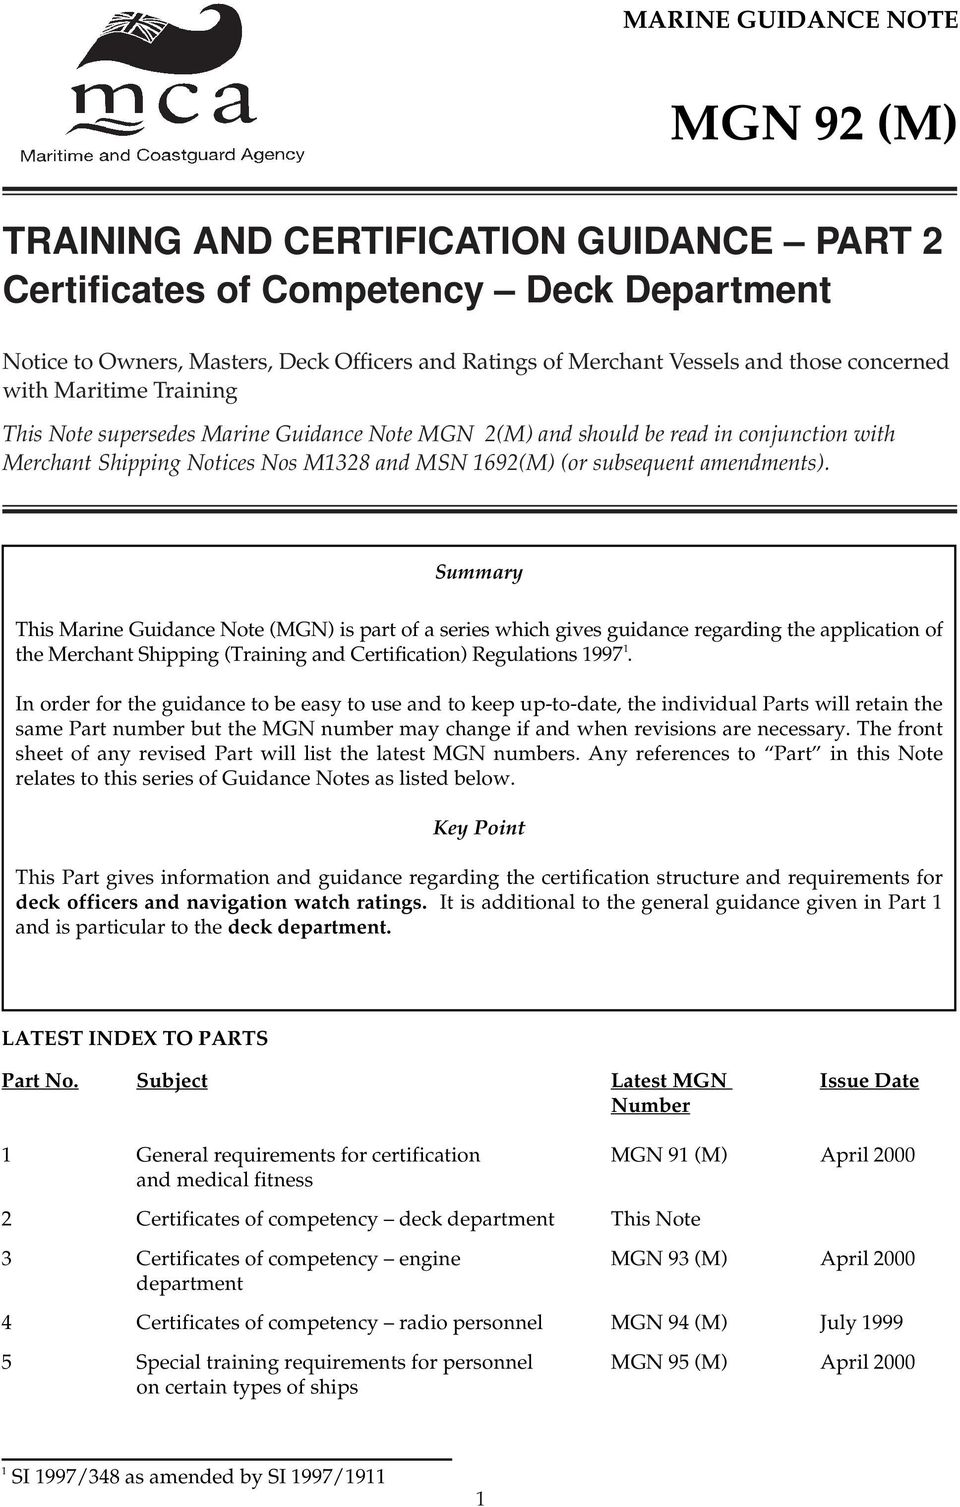 amendments). Summary This Marine Guidance Note (MGN) is part of a series which gives guidance regarding the application of the Merchant Shipping (Training and Certification) Regulations 1997 1.